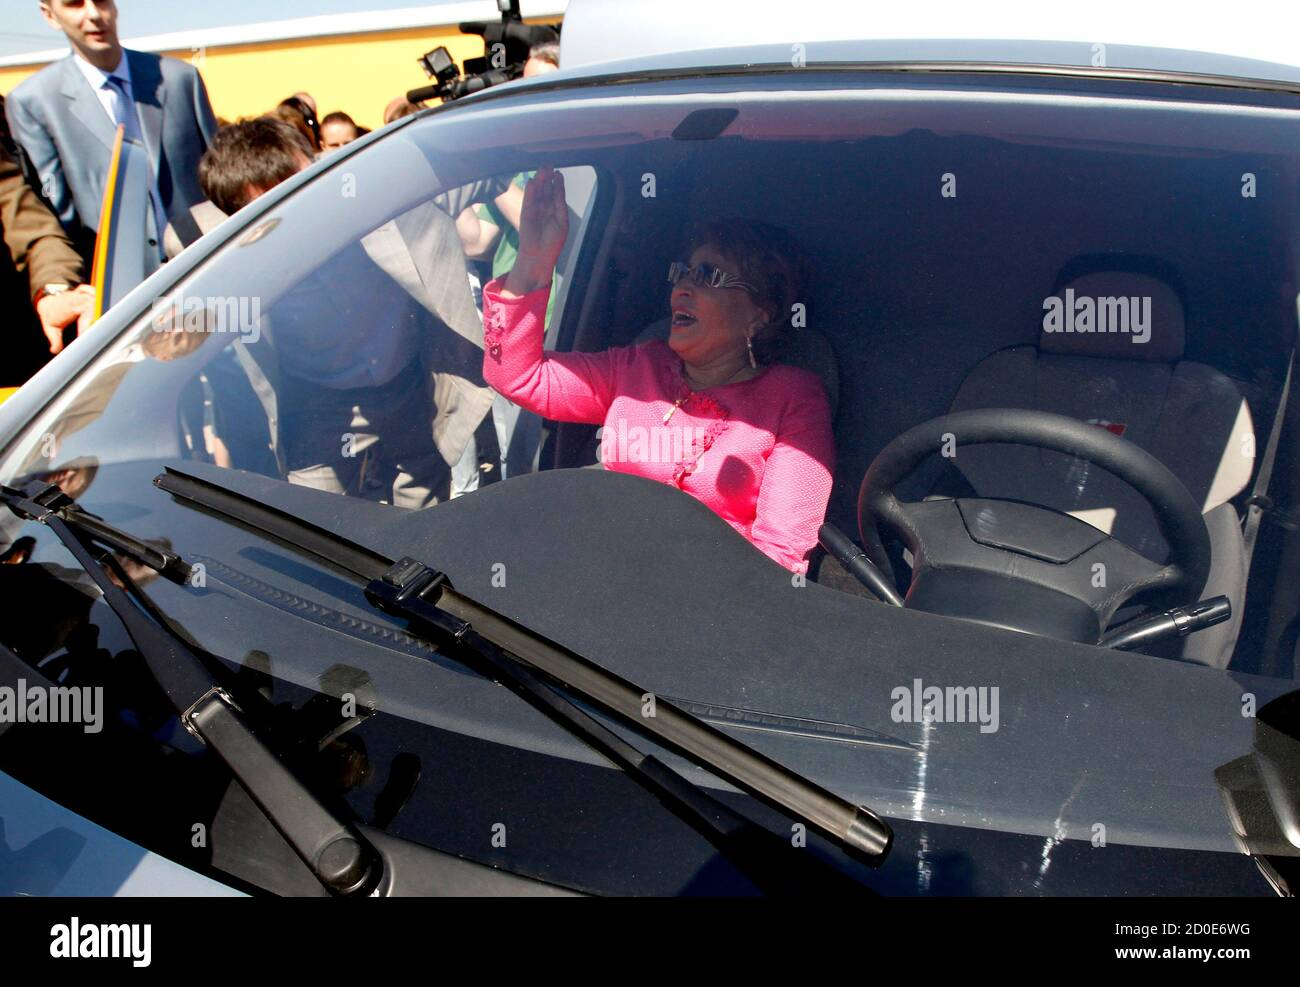 """St. Petersburg's Governor Valentina Matviyenko sits in a Furgon automobile as she takes part in a ceremony to start the construction of the plant to produce Russian new car brand """"e"""" automobiles, designed by Onexim Group company, owned by billionaire Mikhail Prokhorov, outside St. Petersburg June 8, 2011. Russian new car brand """"e"""" (""""e with two dots above"""" is the seventh letter in Russian alphabet) automobiles will become the world's cheapest hybrids, priced at $10,000, according to the company's representatives.  REUTERS/Alexander Demianchuk  (RUSSIA - Tags: BUSINESS TRANSPORT CONSTRUCTION POL Foto Stock"""